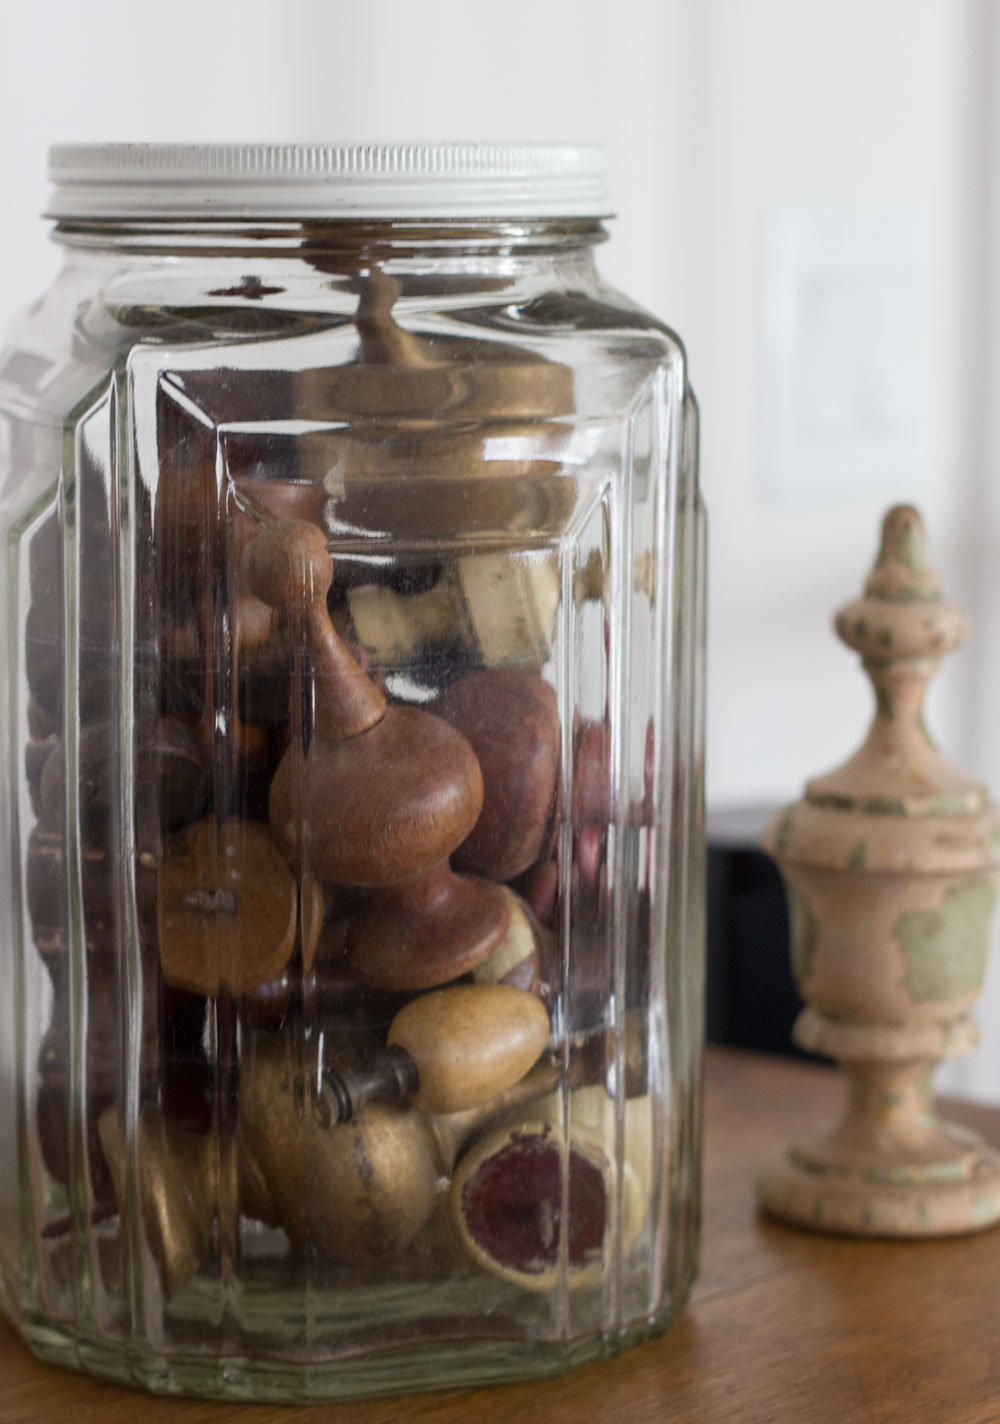 group collections together in glass jars